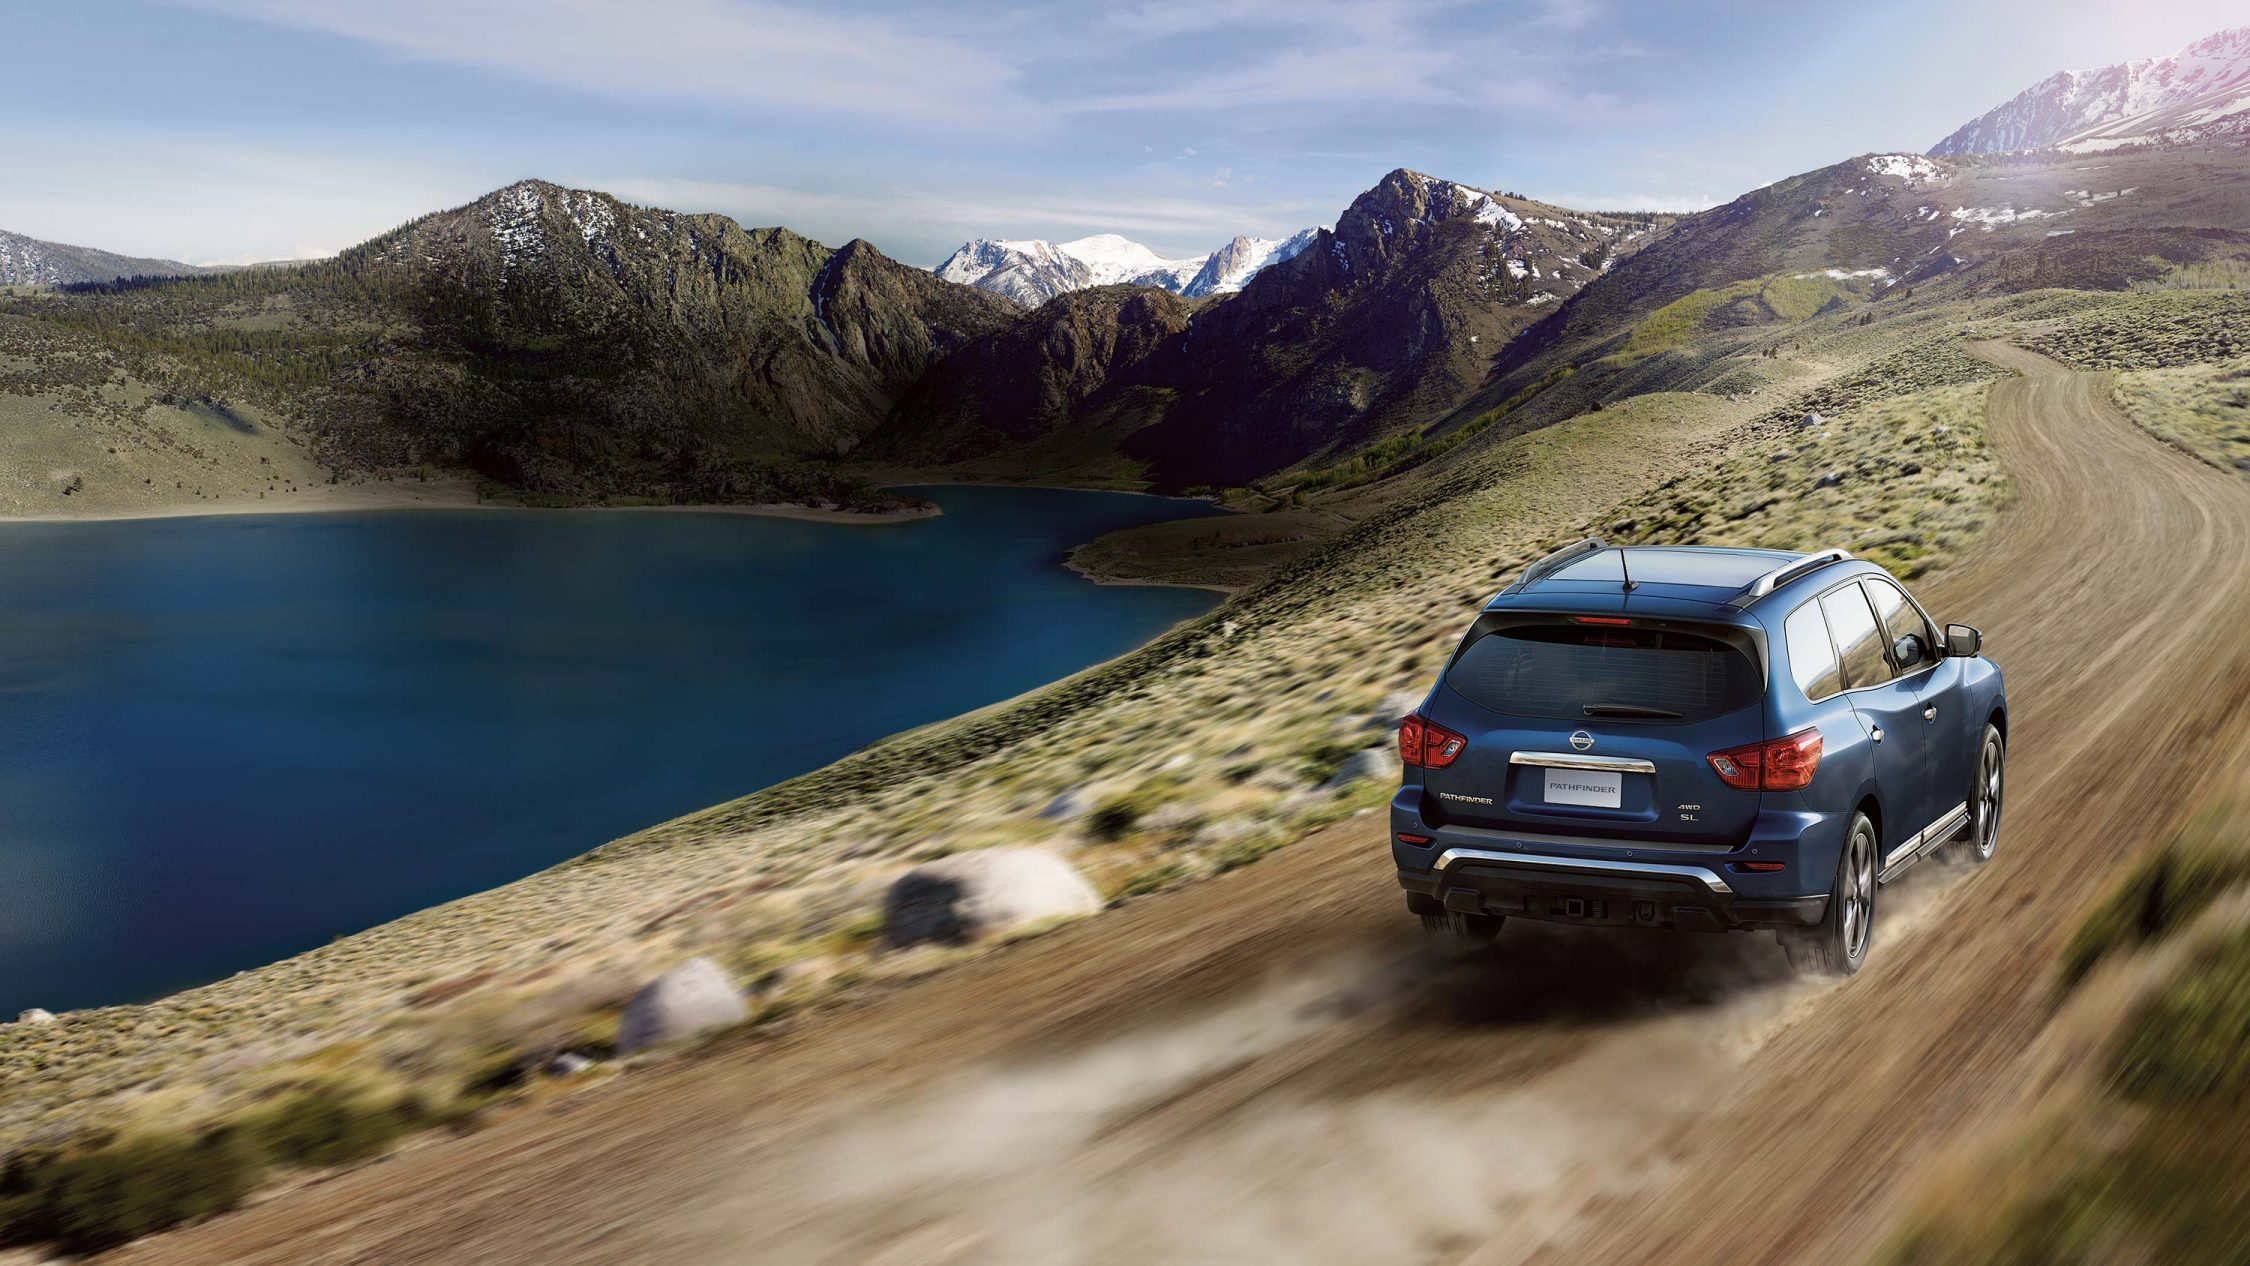 Nissan Pathfinder driving through the mountain